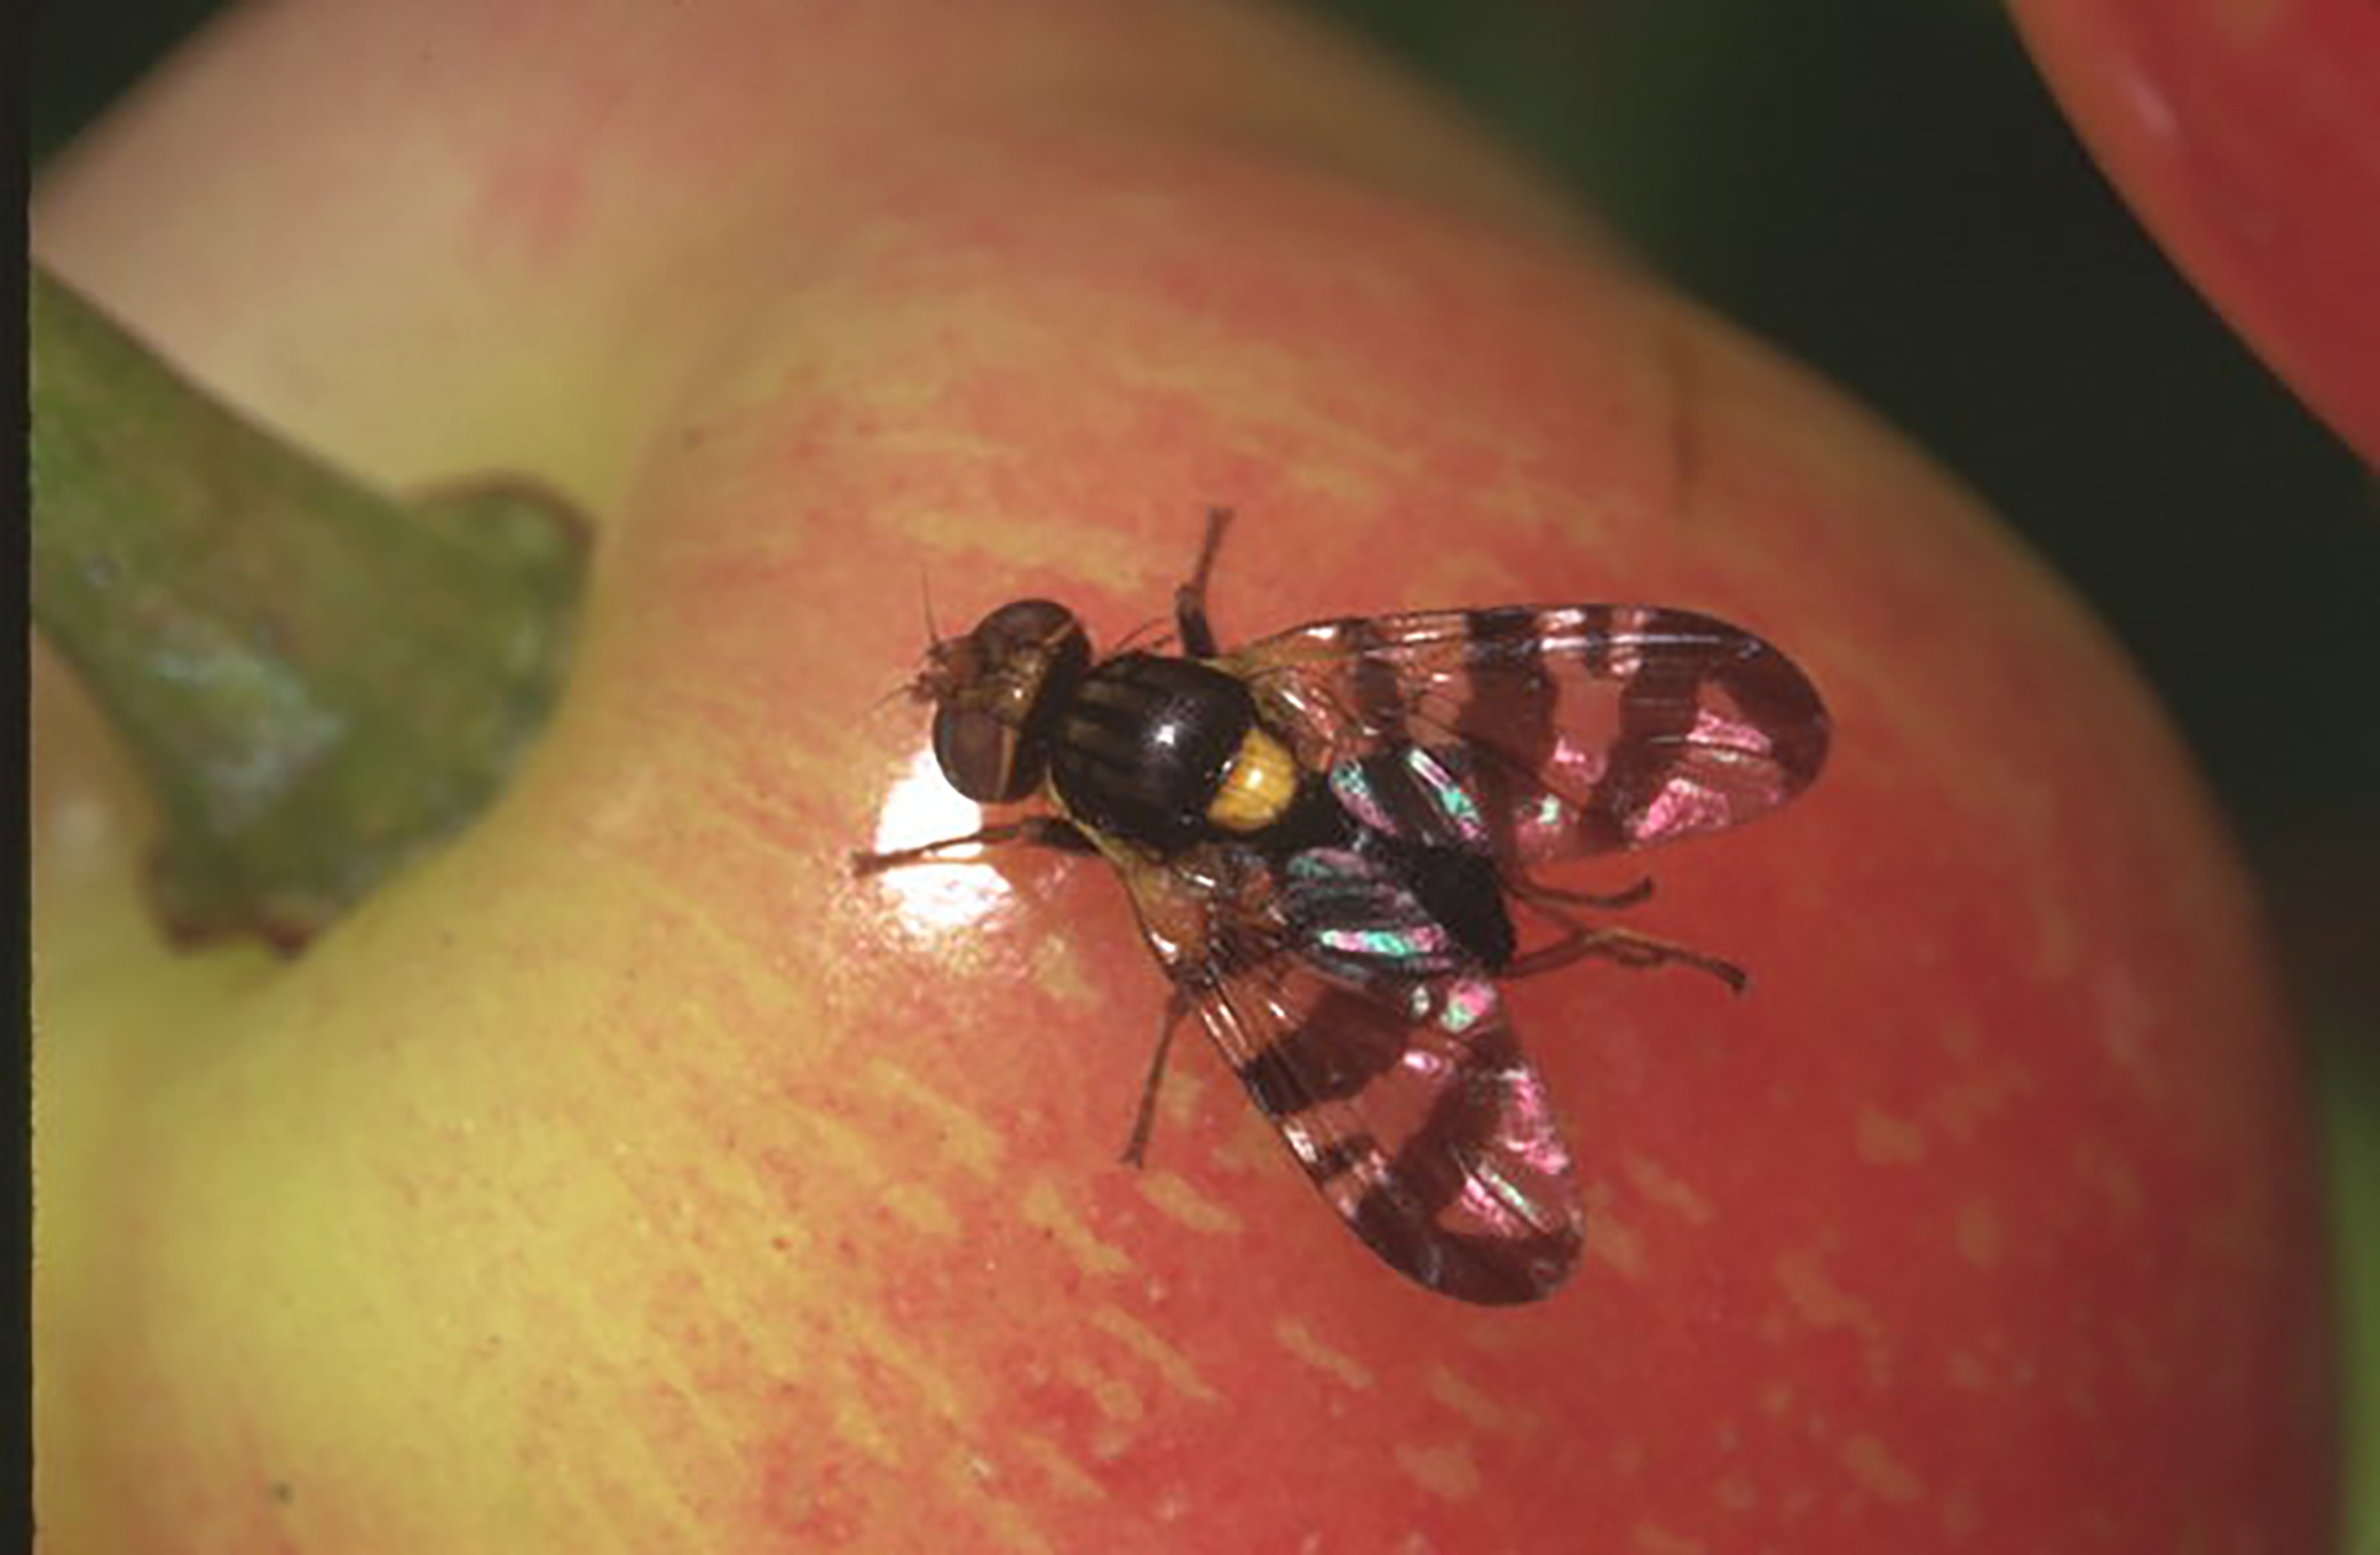 European cherry fruit fly